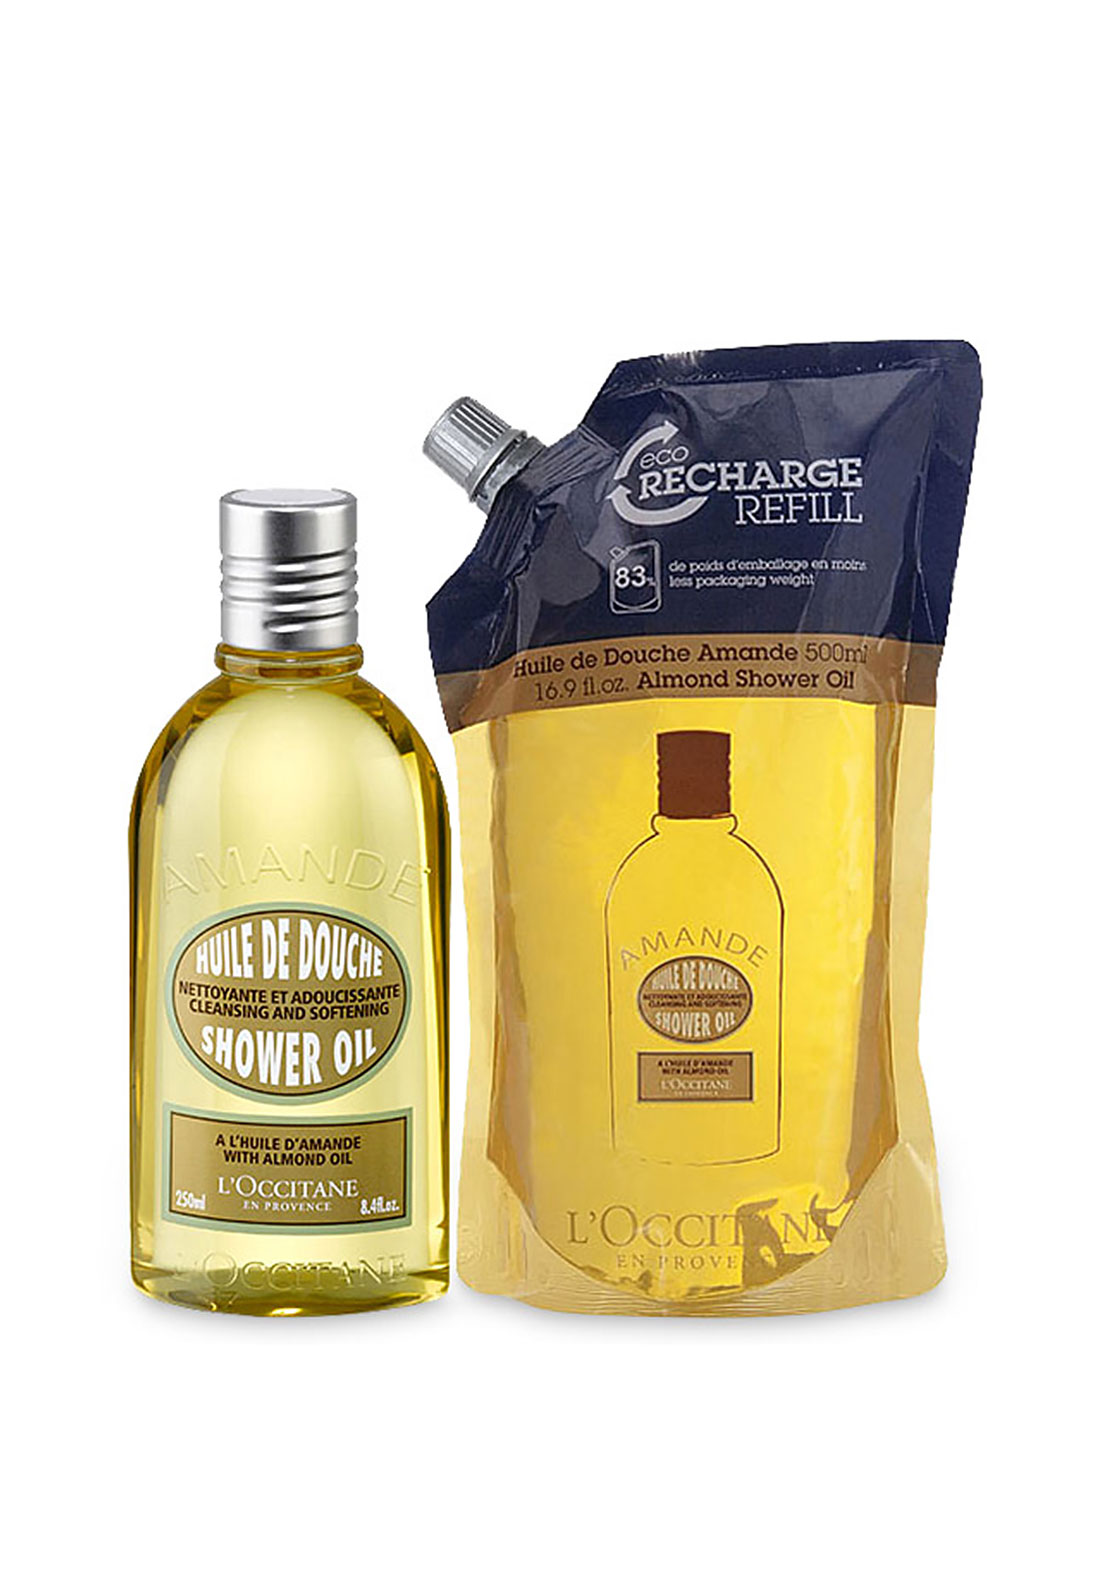 L'Occitane Almond Shower Oil Duo